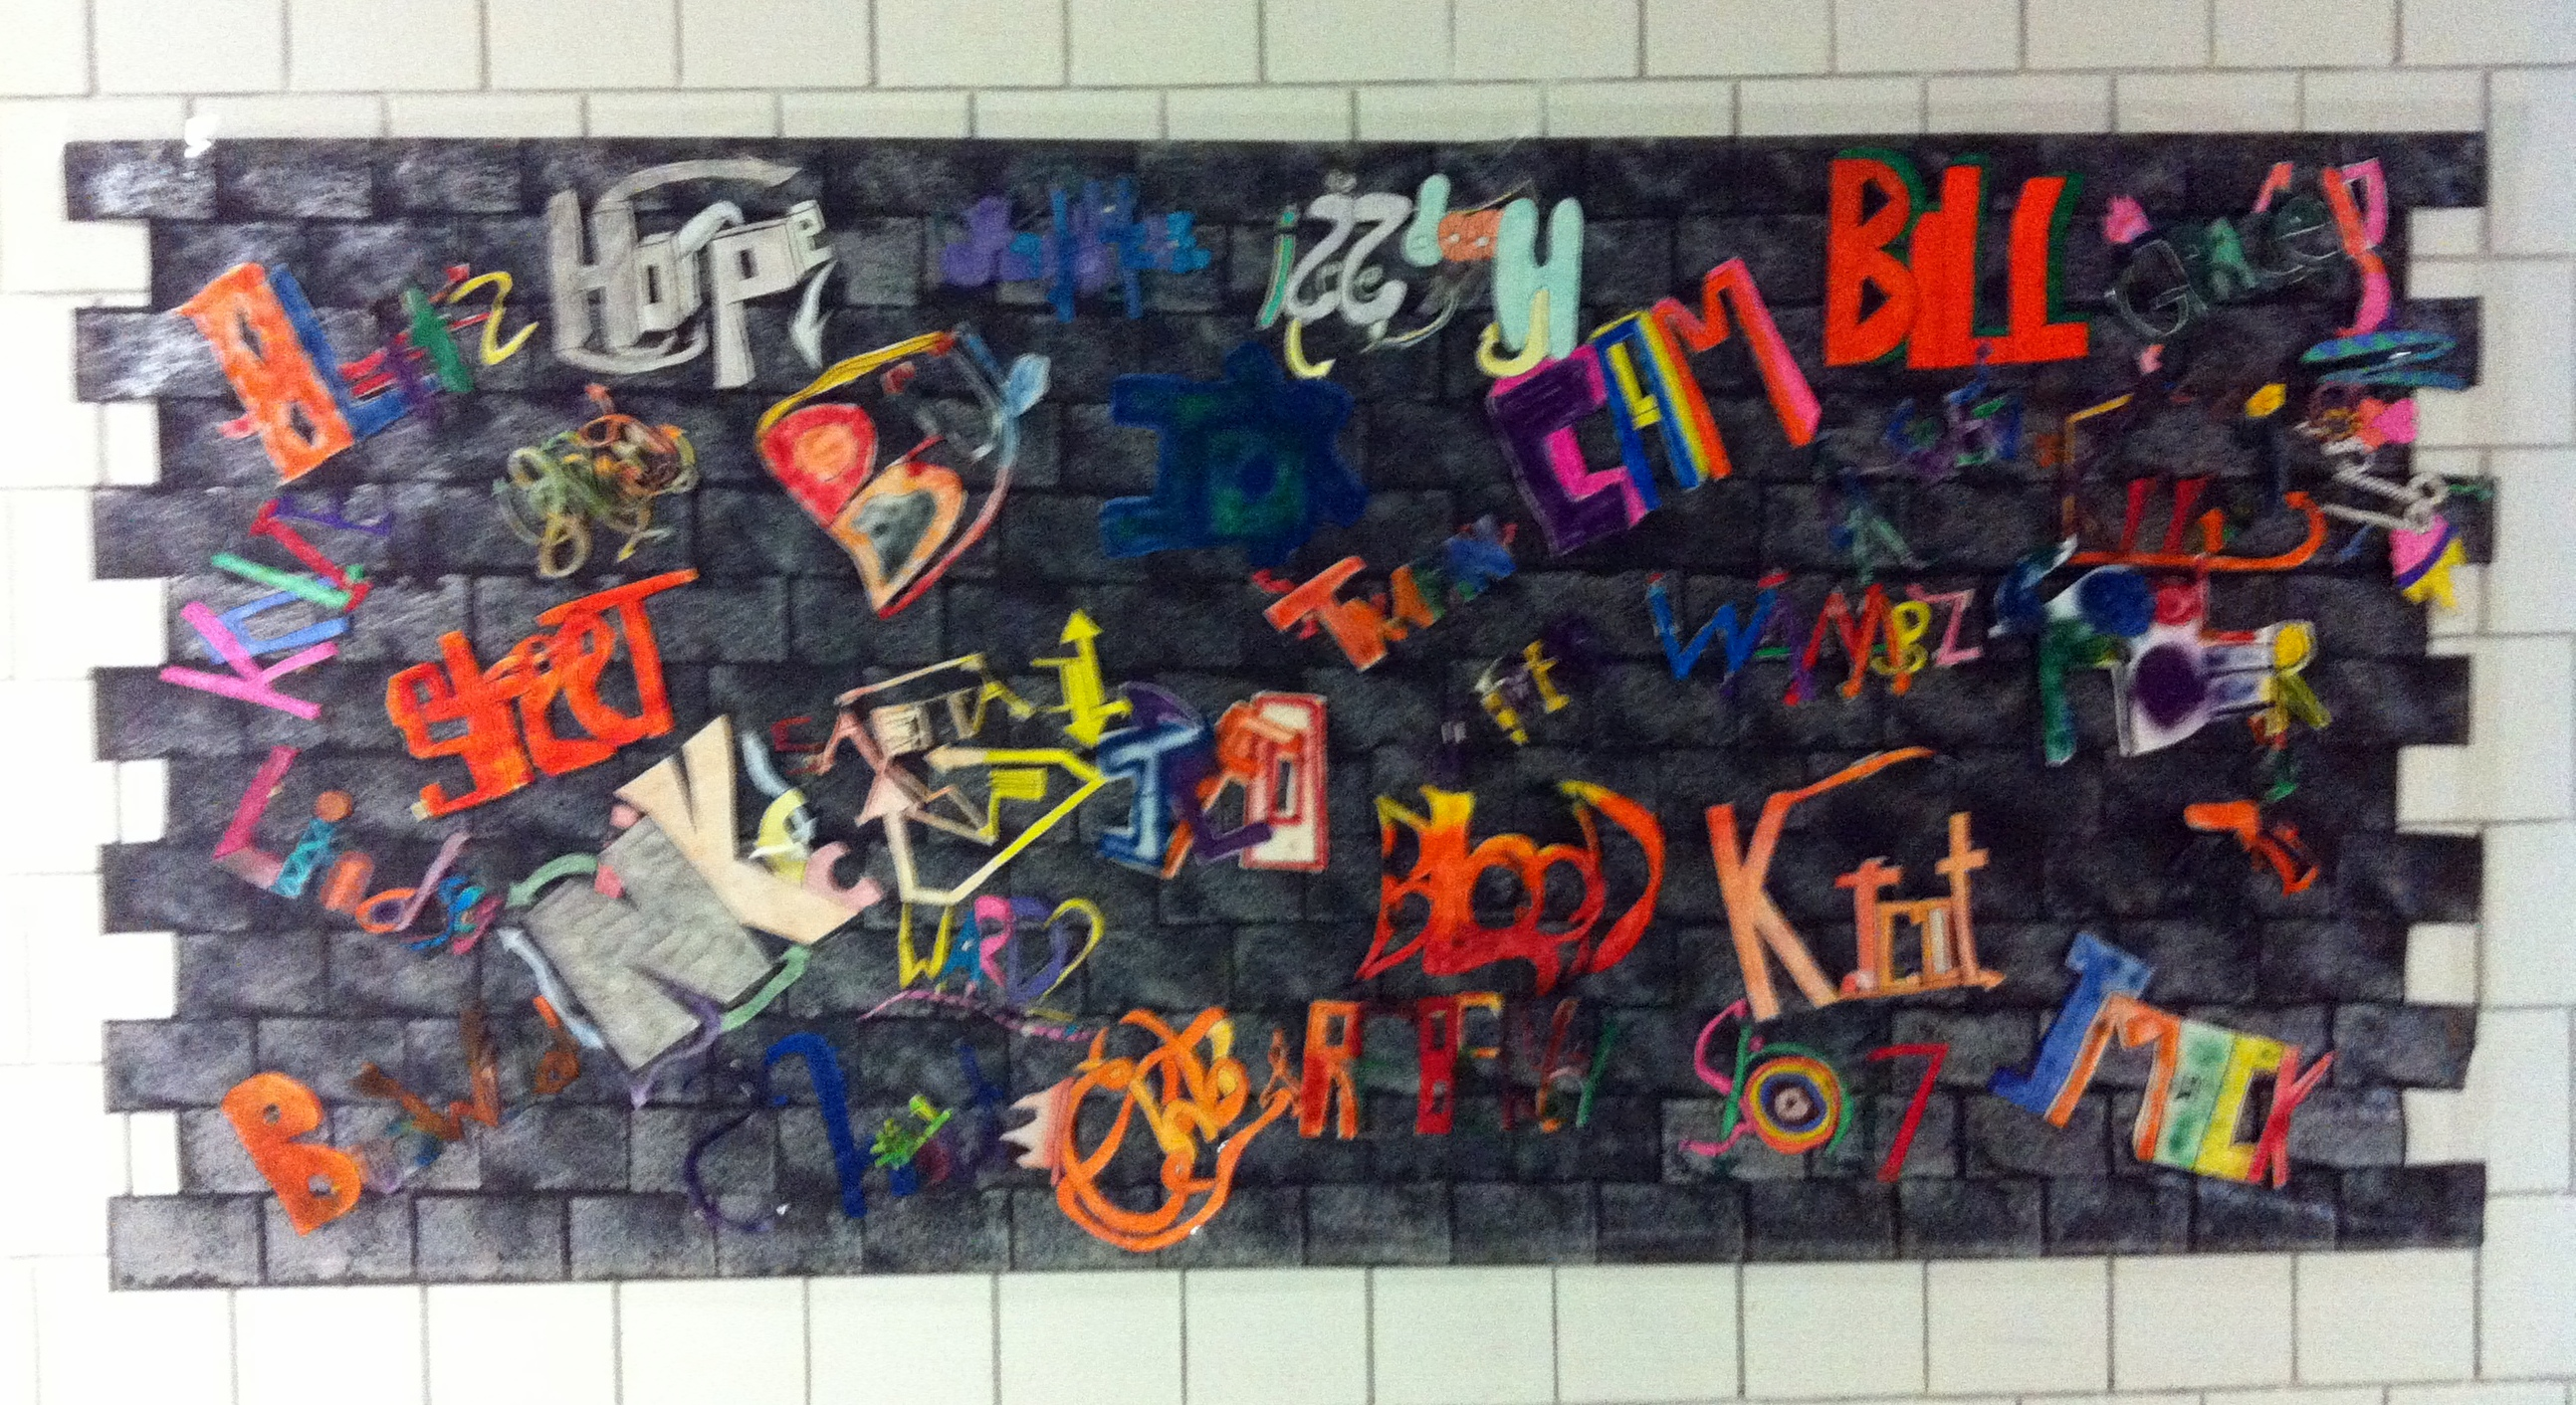 In this unit students learn about legal vs illegal graffiti art and design a tag